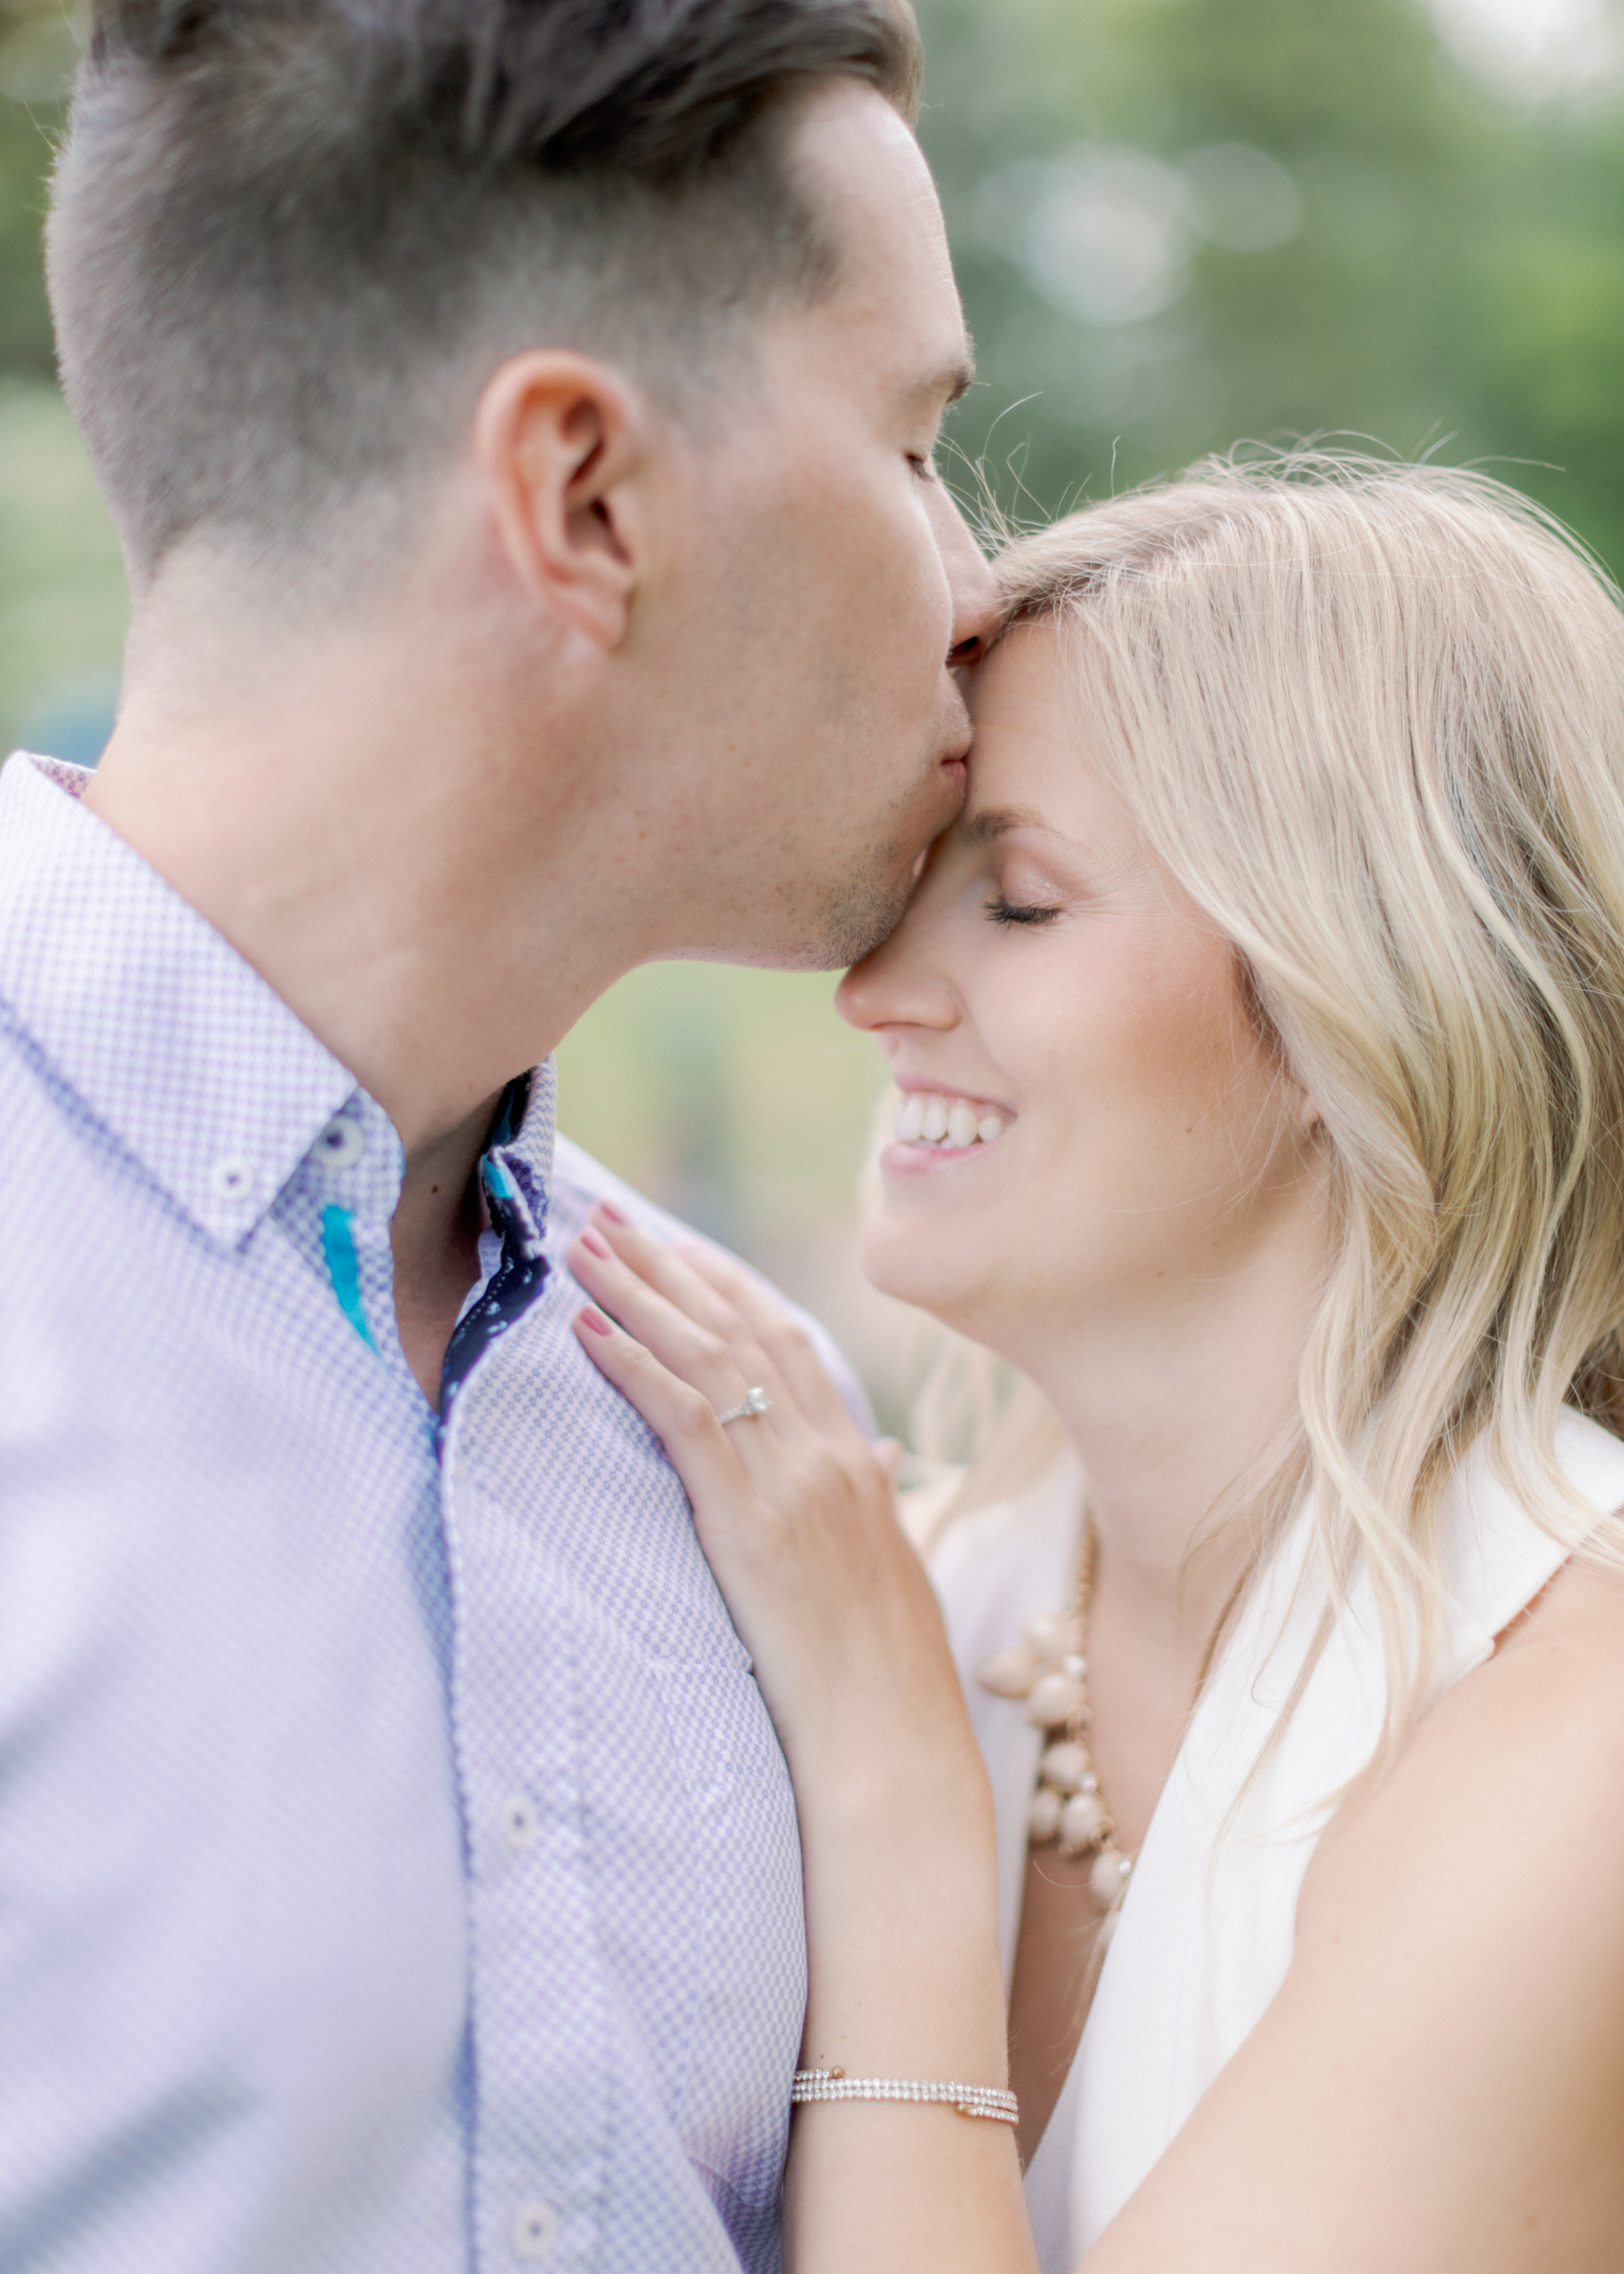 kiss on her forehead during engagement session